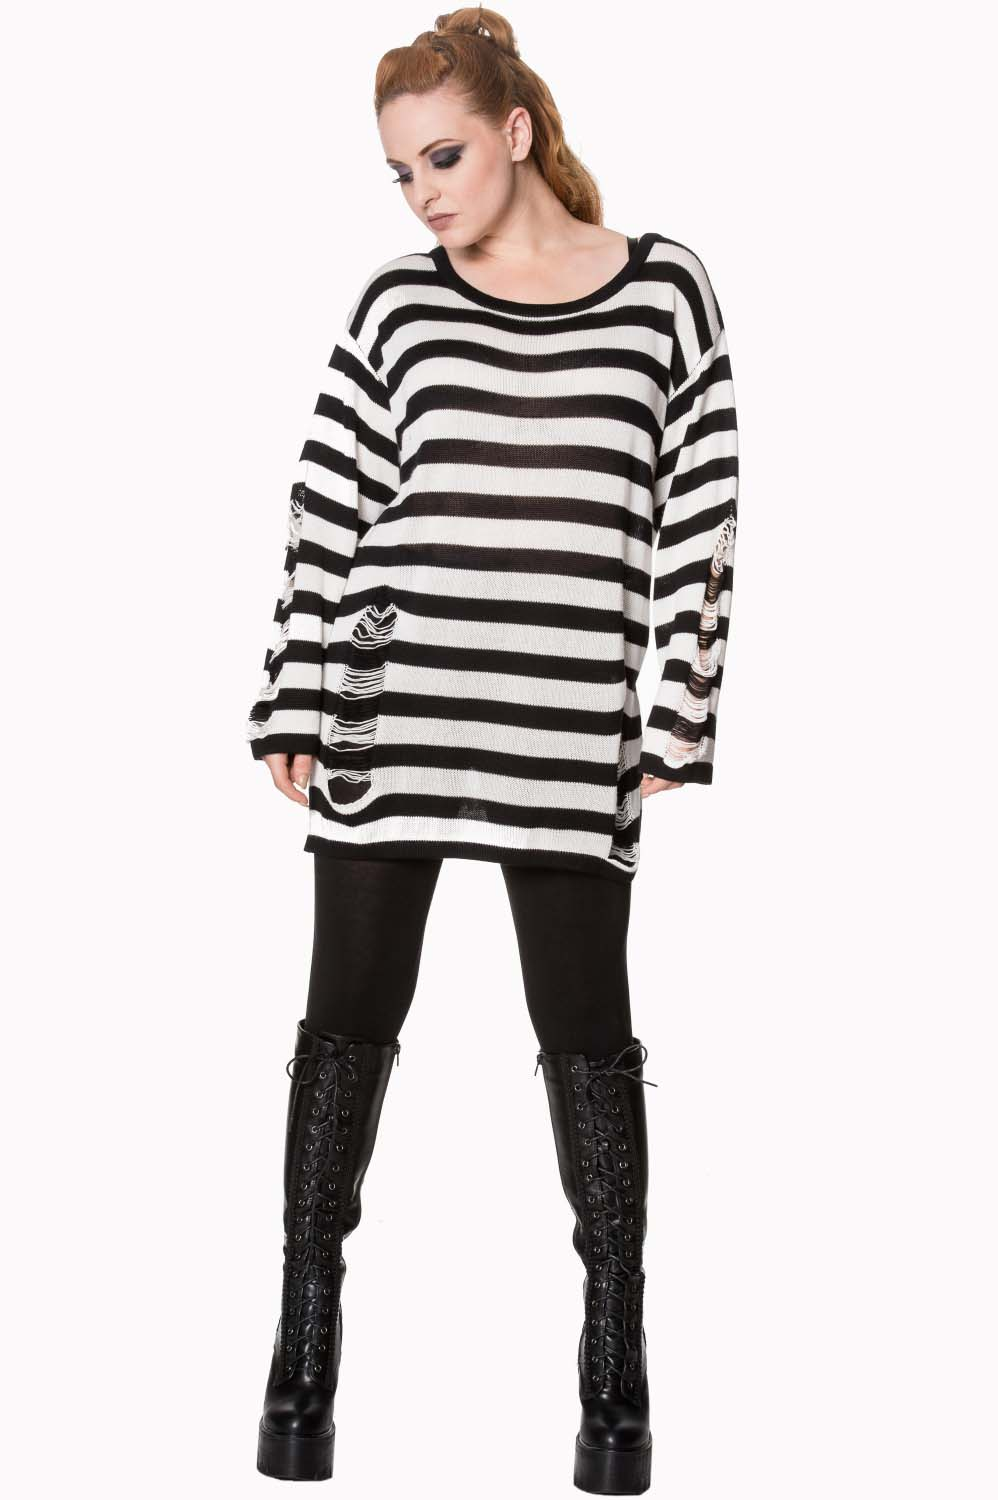 Touch Break Striped Oversized Distressed Sweater by Banned Apparel - white & black stripe - SALE sz M only